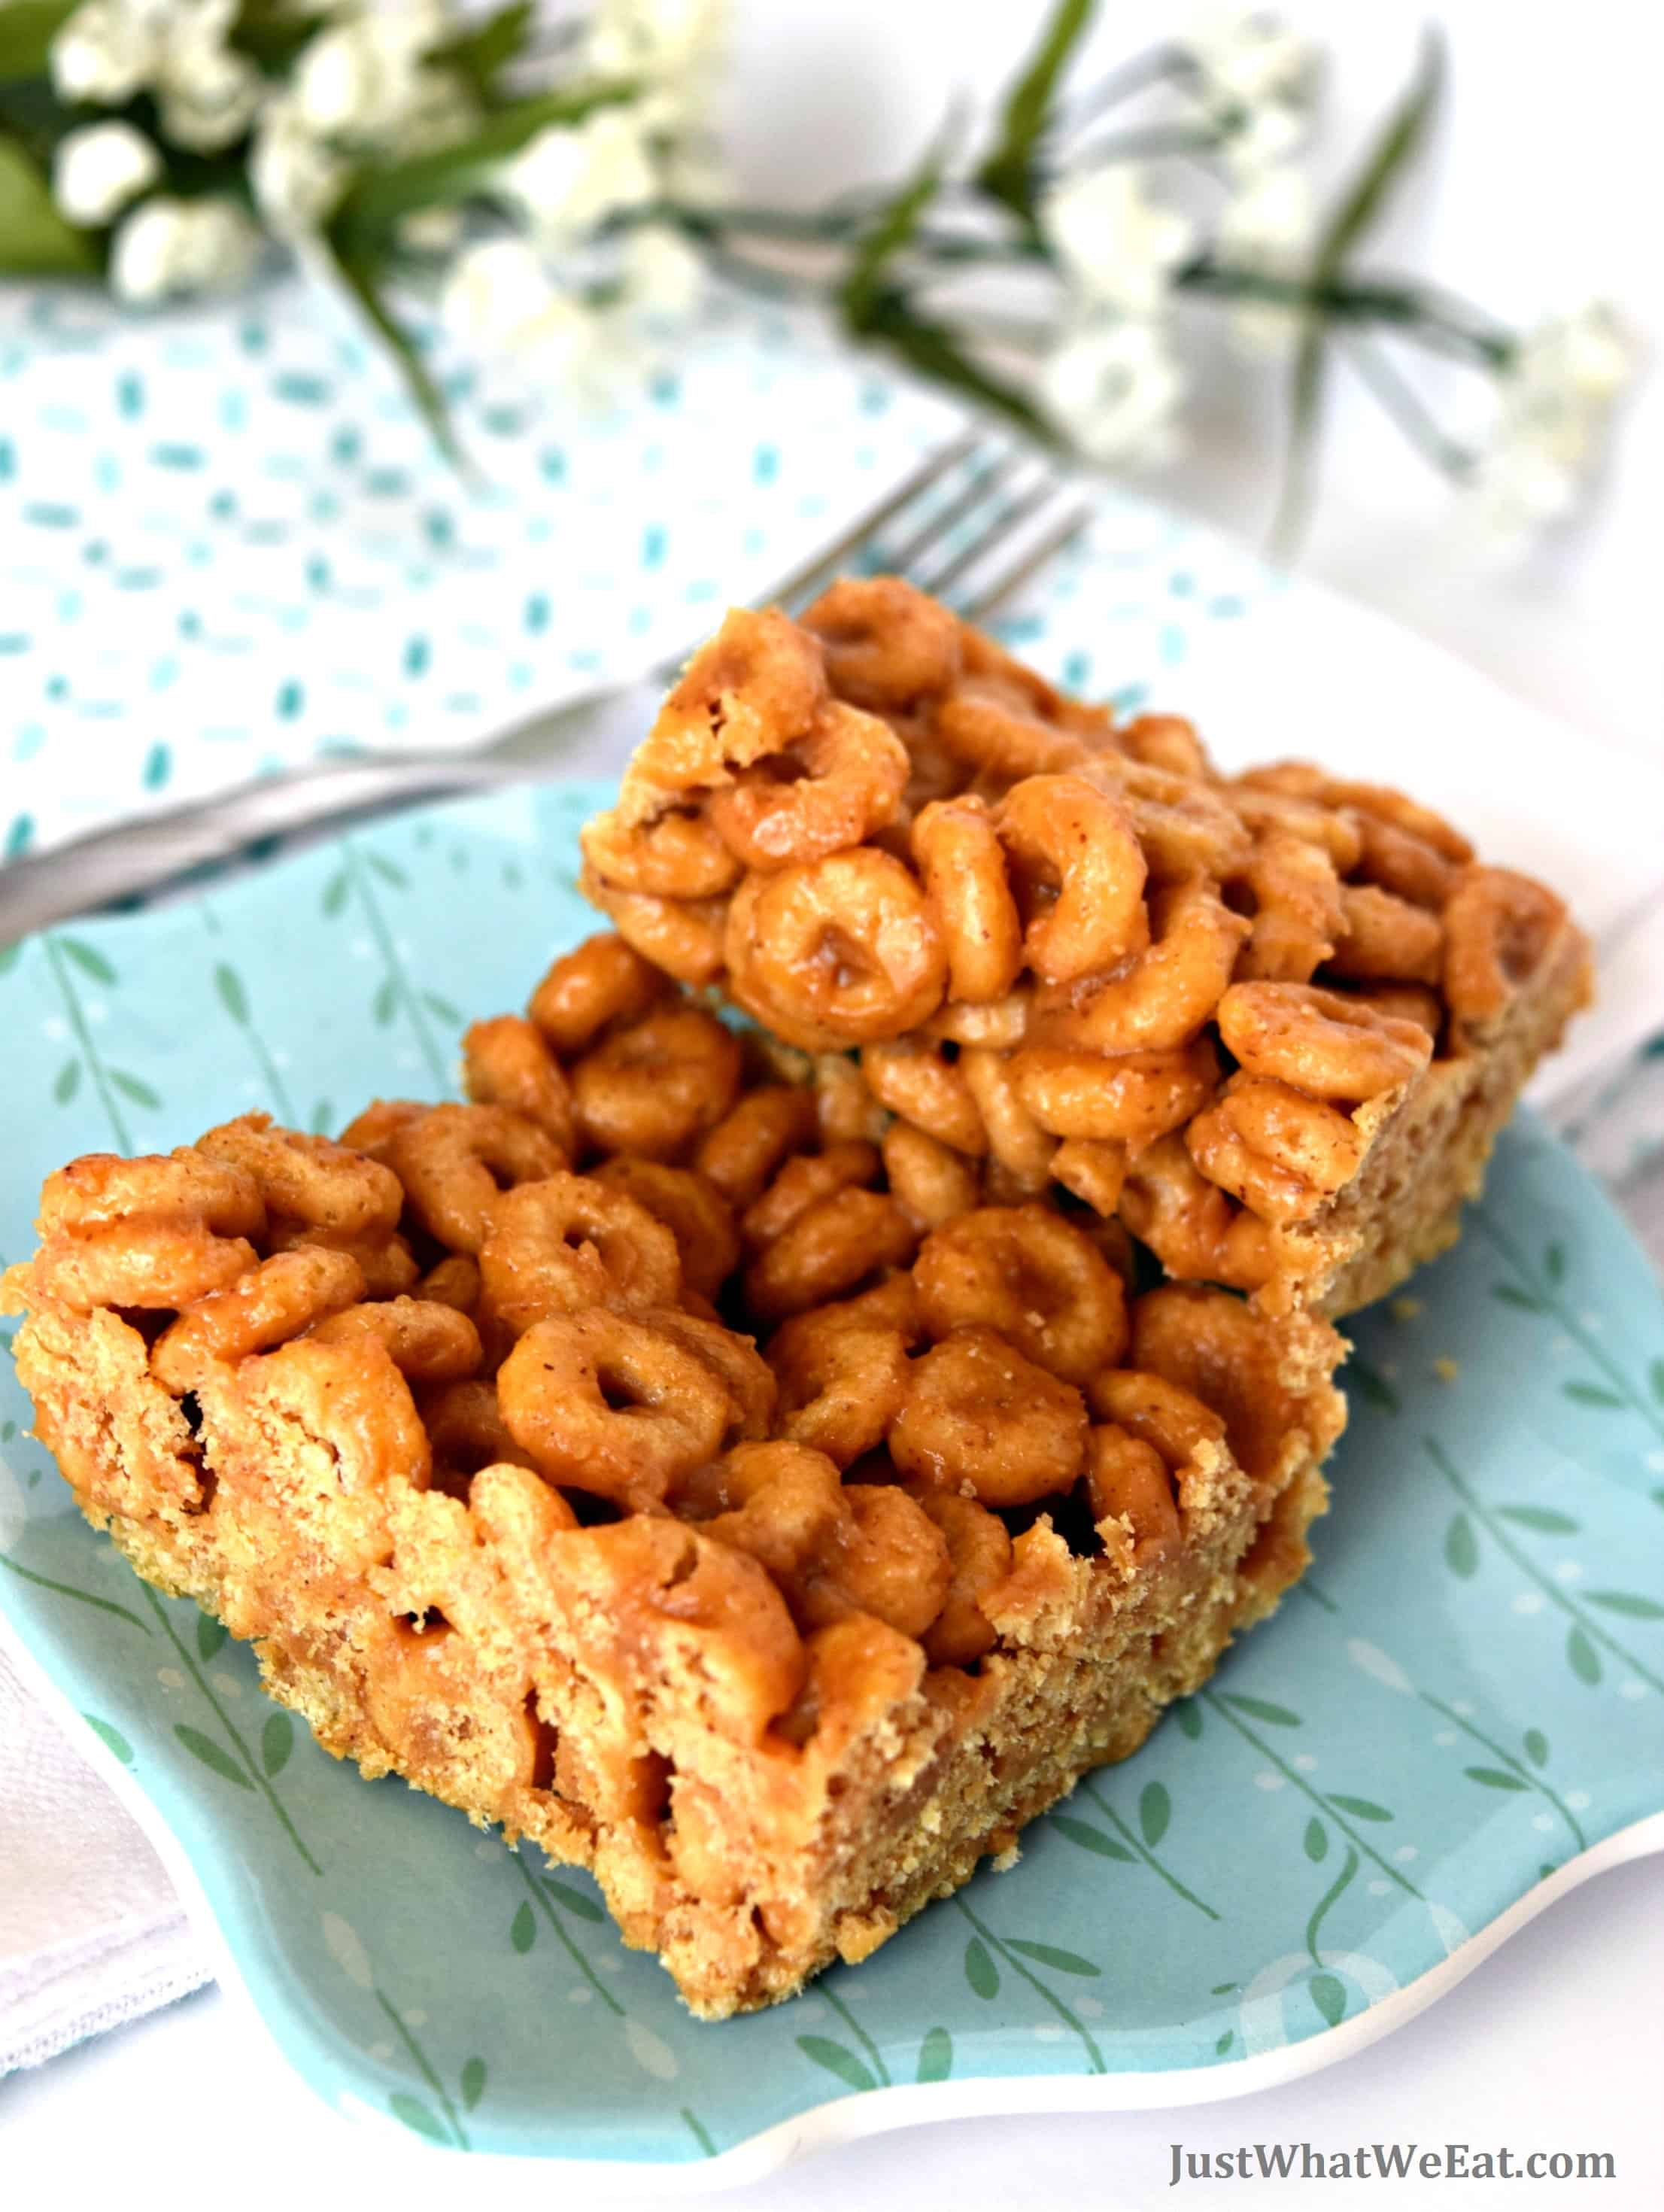 Peanut Butter Cereal Bars - Gluten Free, Dairy Free, & Refined Sugar Free